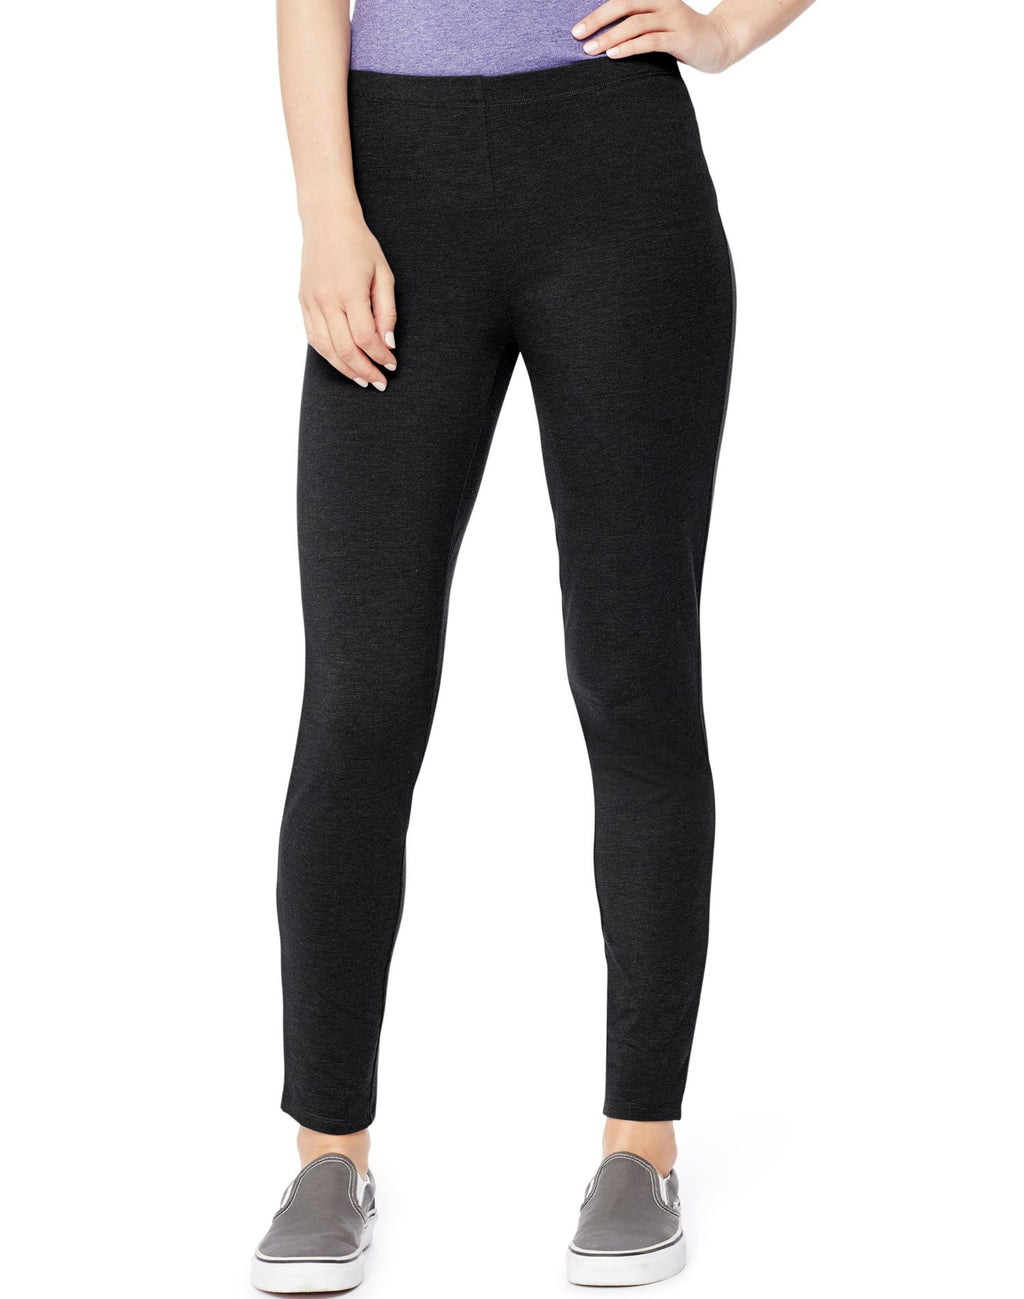 Hanes Women`s Stretch Jersey Legging